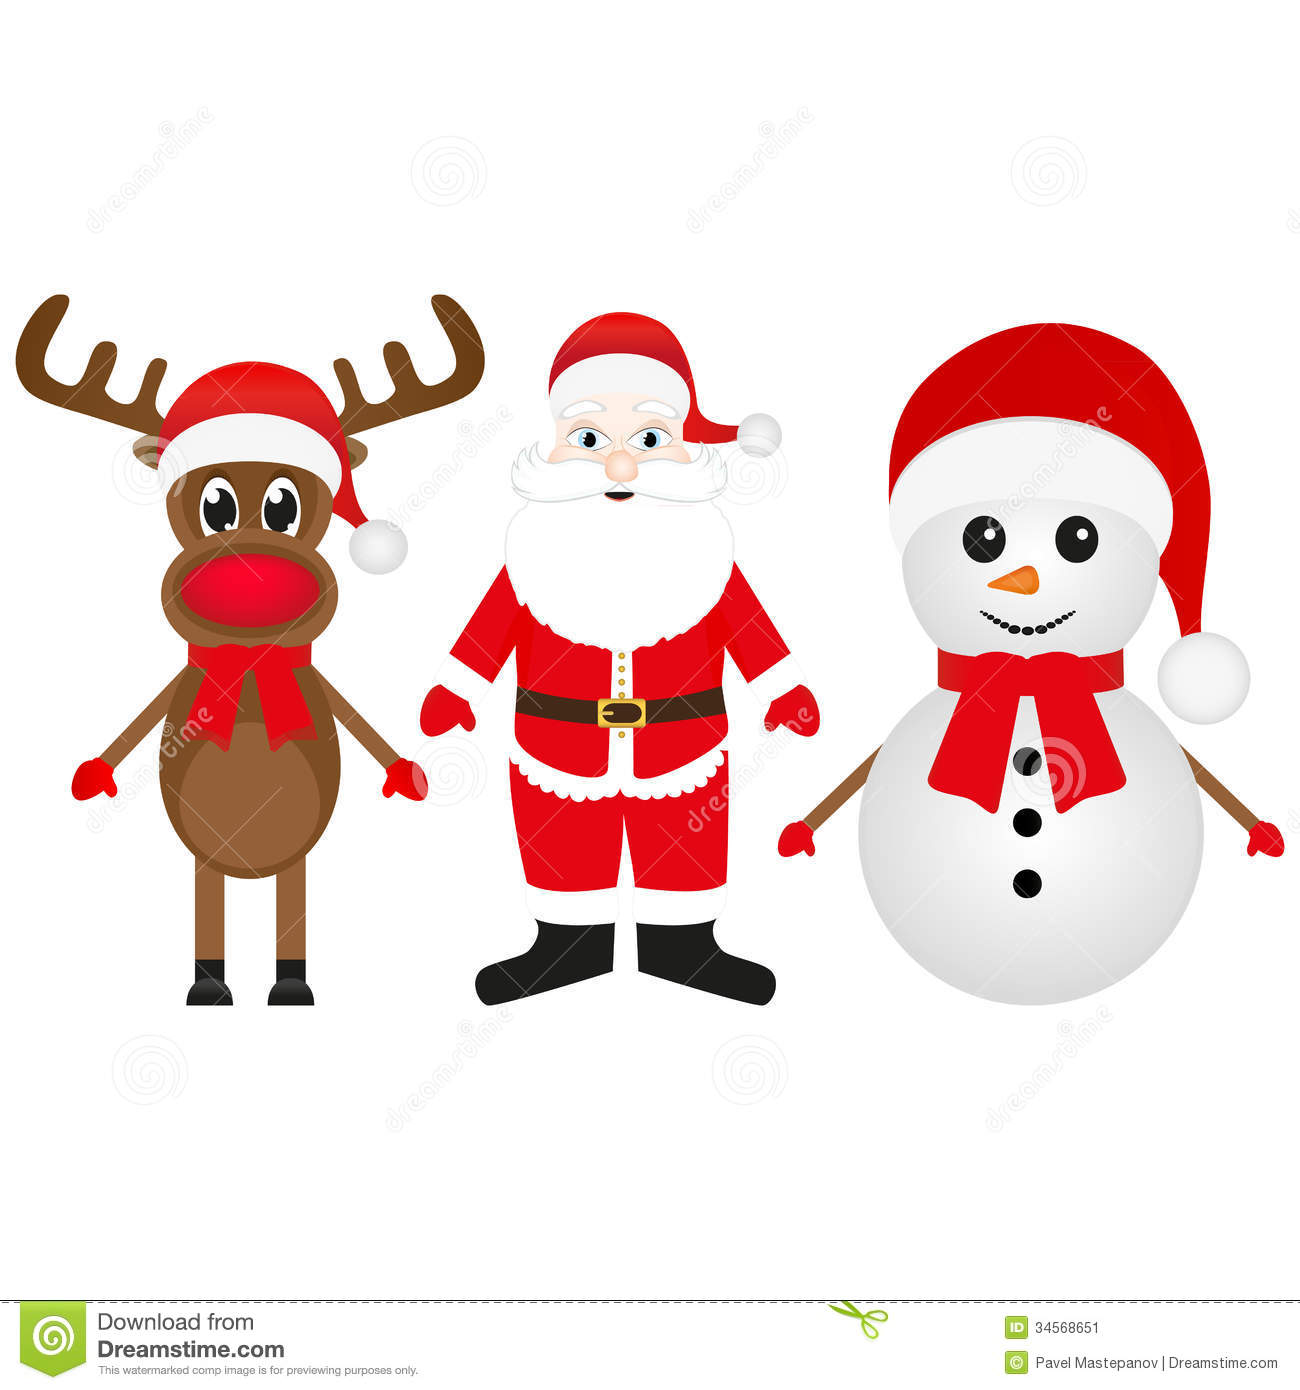 Christmas Reindeer, Snowman And Santa Claus Stock Image ...